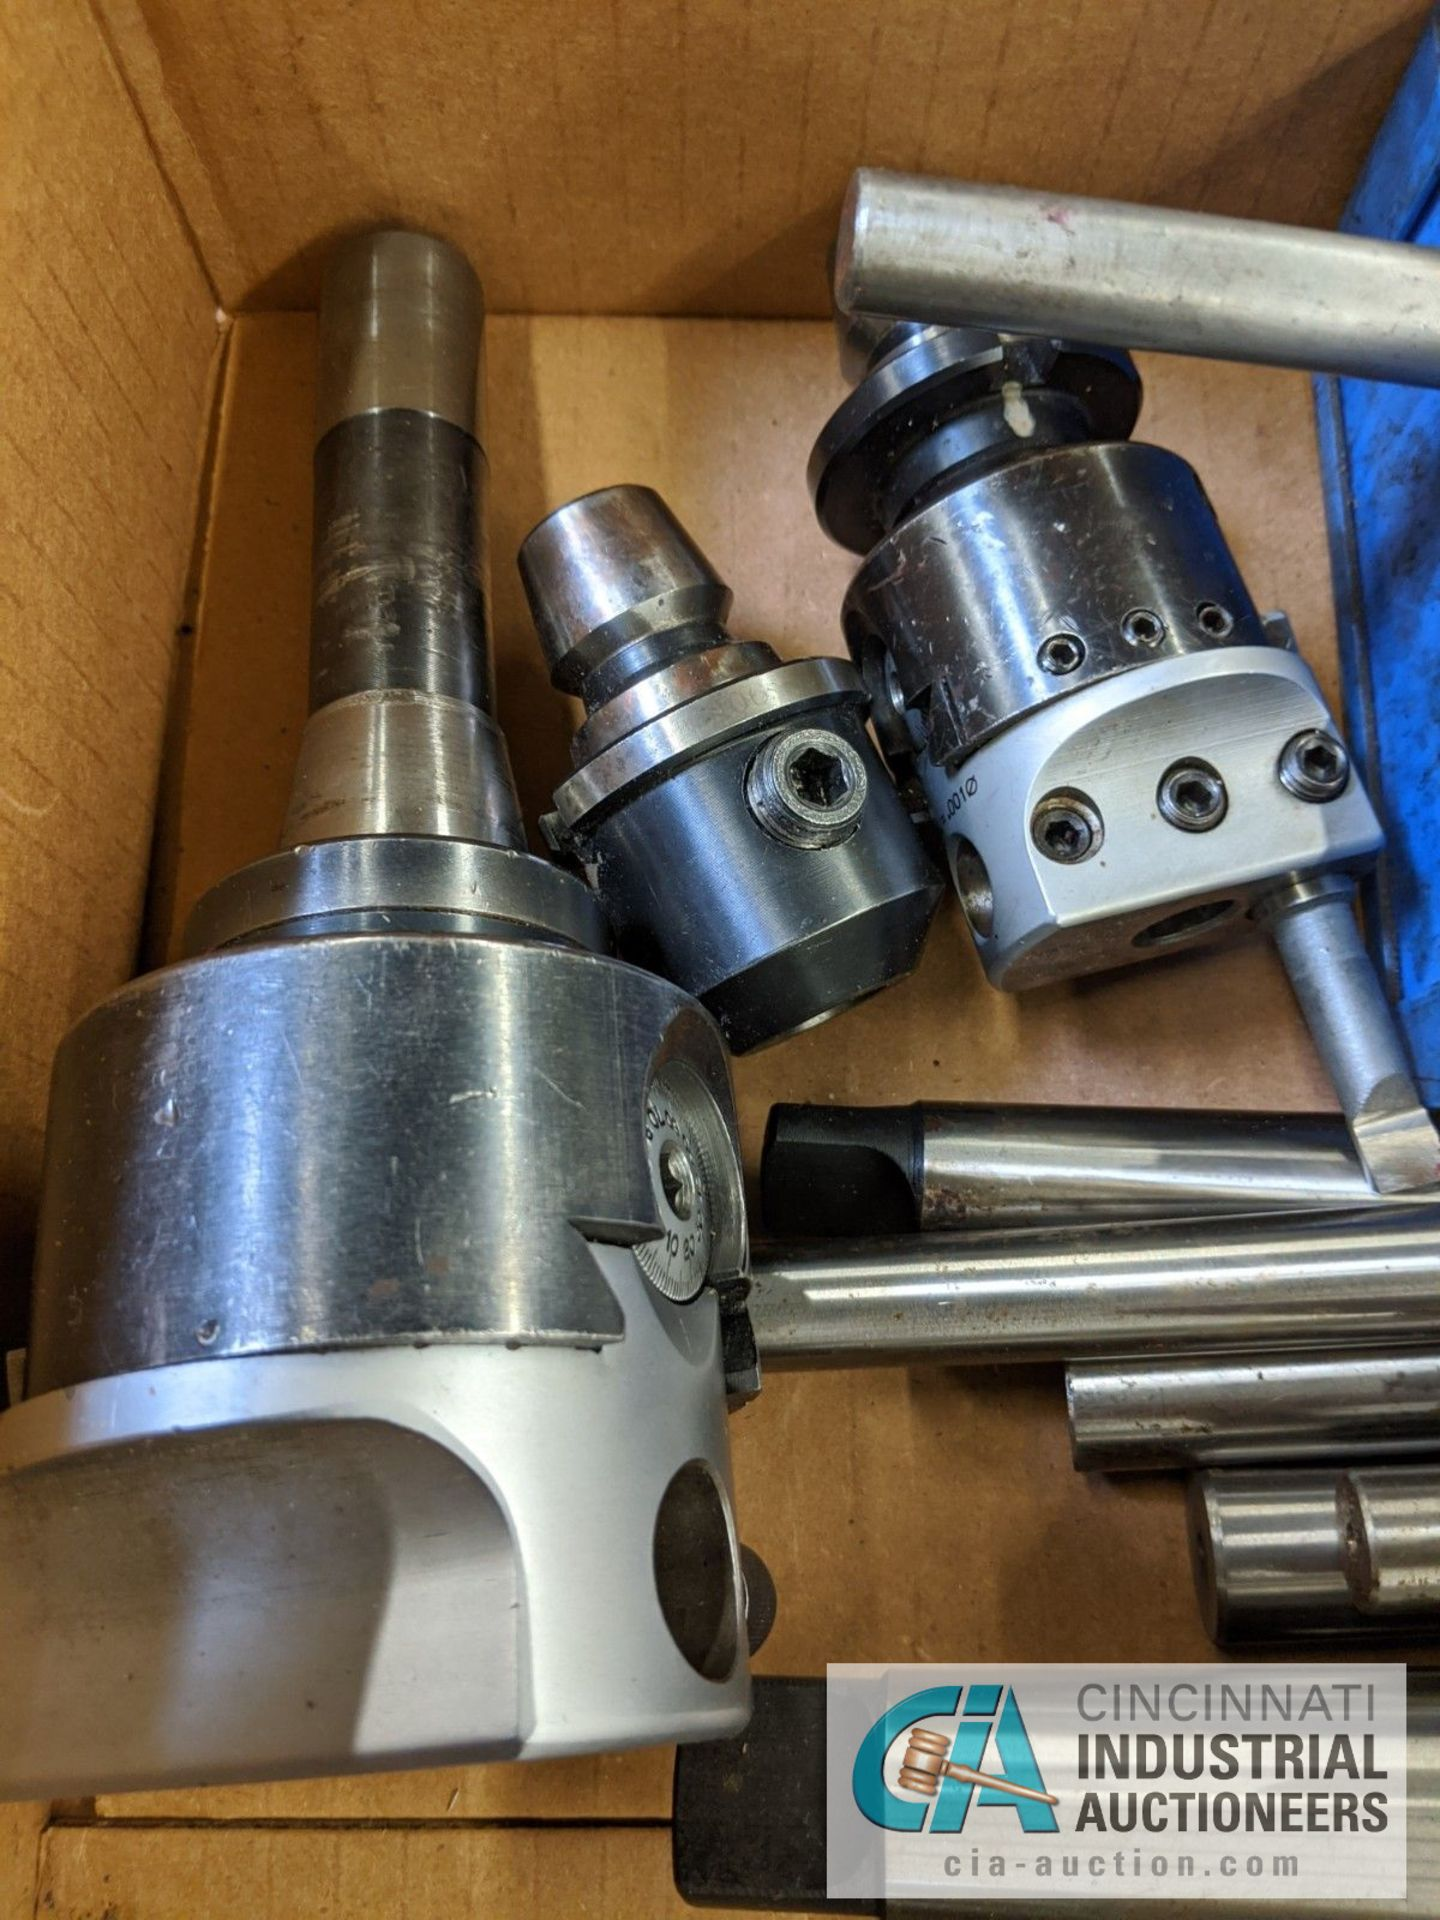 (LOT) BOX OF TOOLING; REAMERS, DRILL CHUCKS, LIVE CENTERS, ADJUSTABLE BORING HEADS - Image 3 of 4